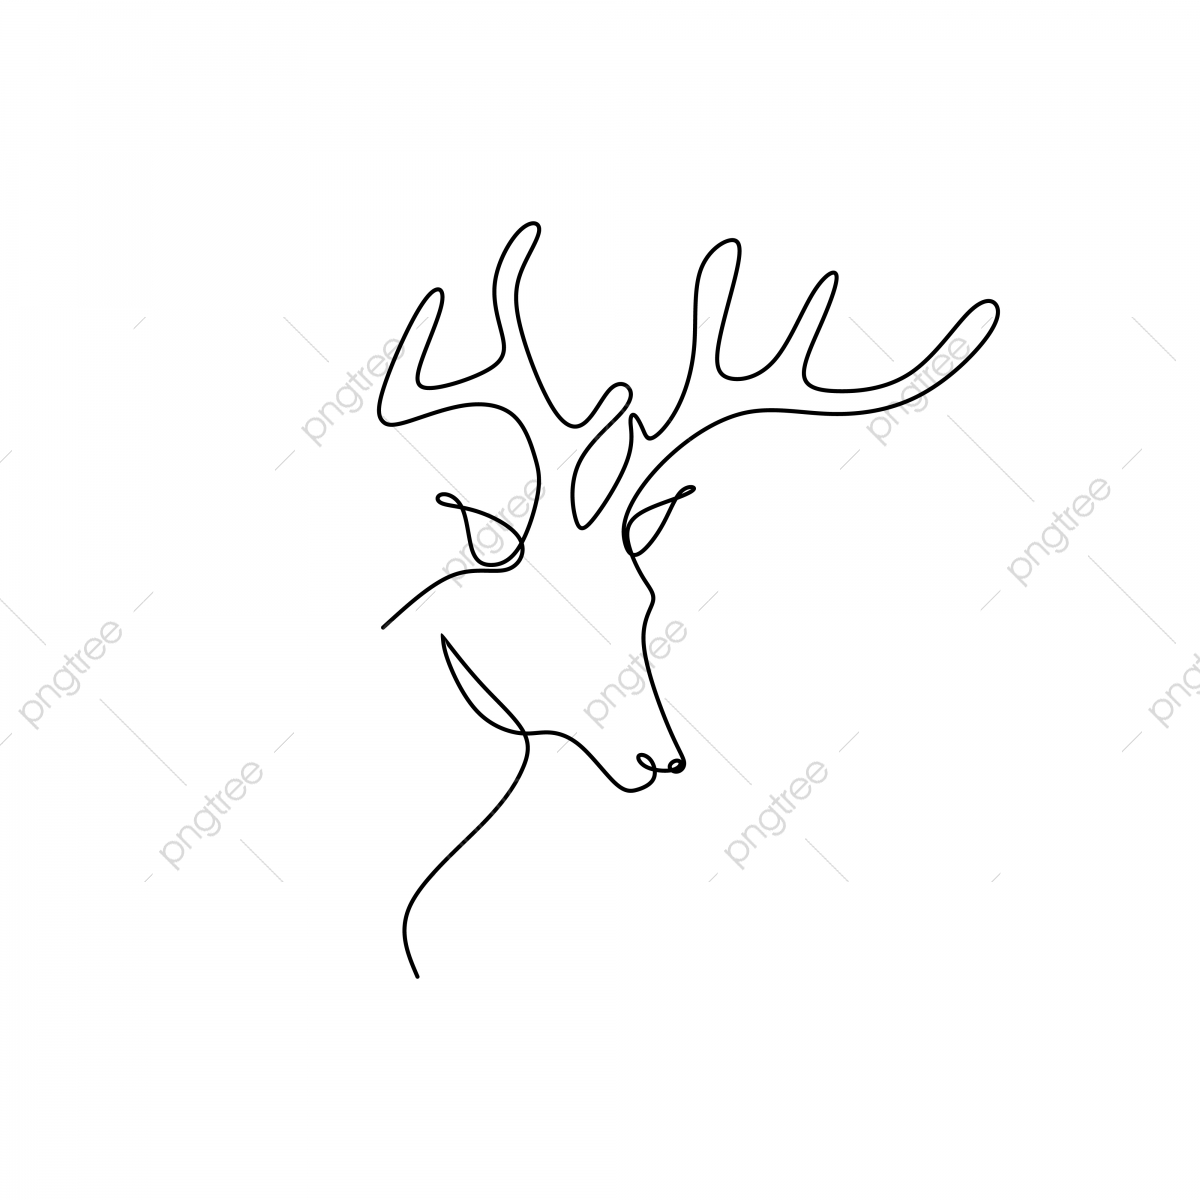 Continuous Line Drawing Of A Deer Head Line Icon Sketch Png And Vector With Transparent Background For Free Download